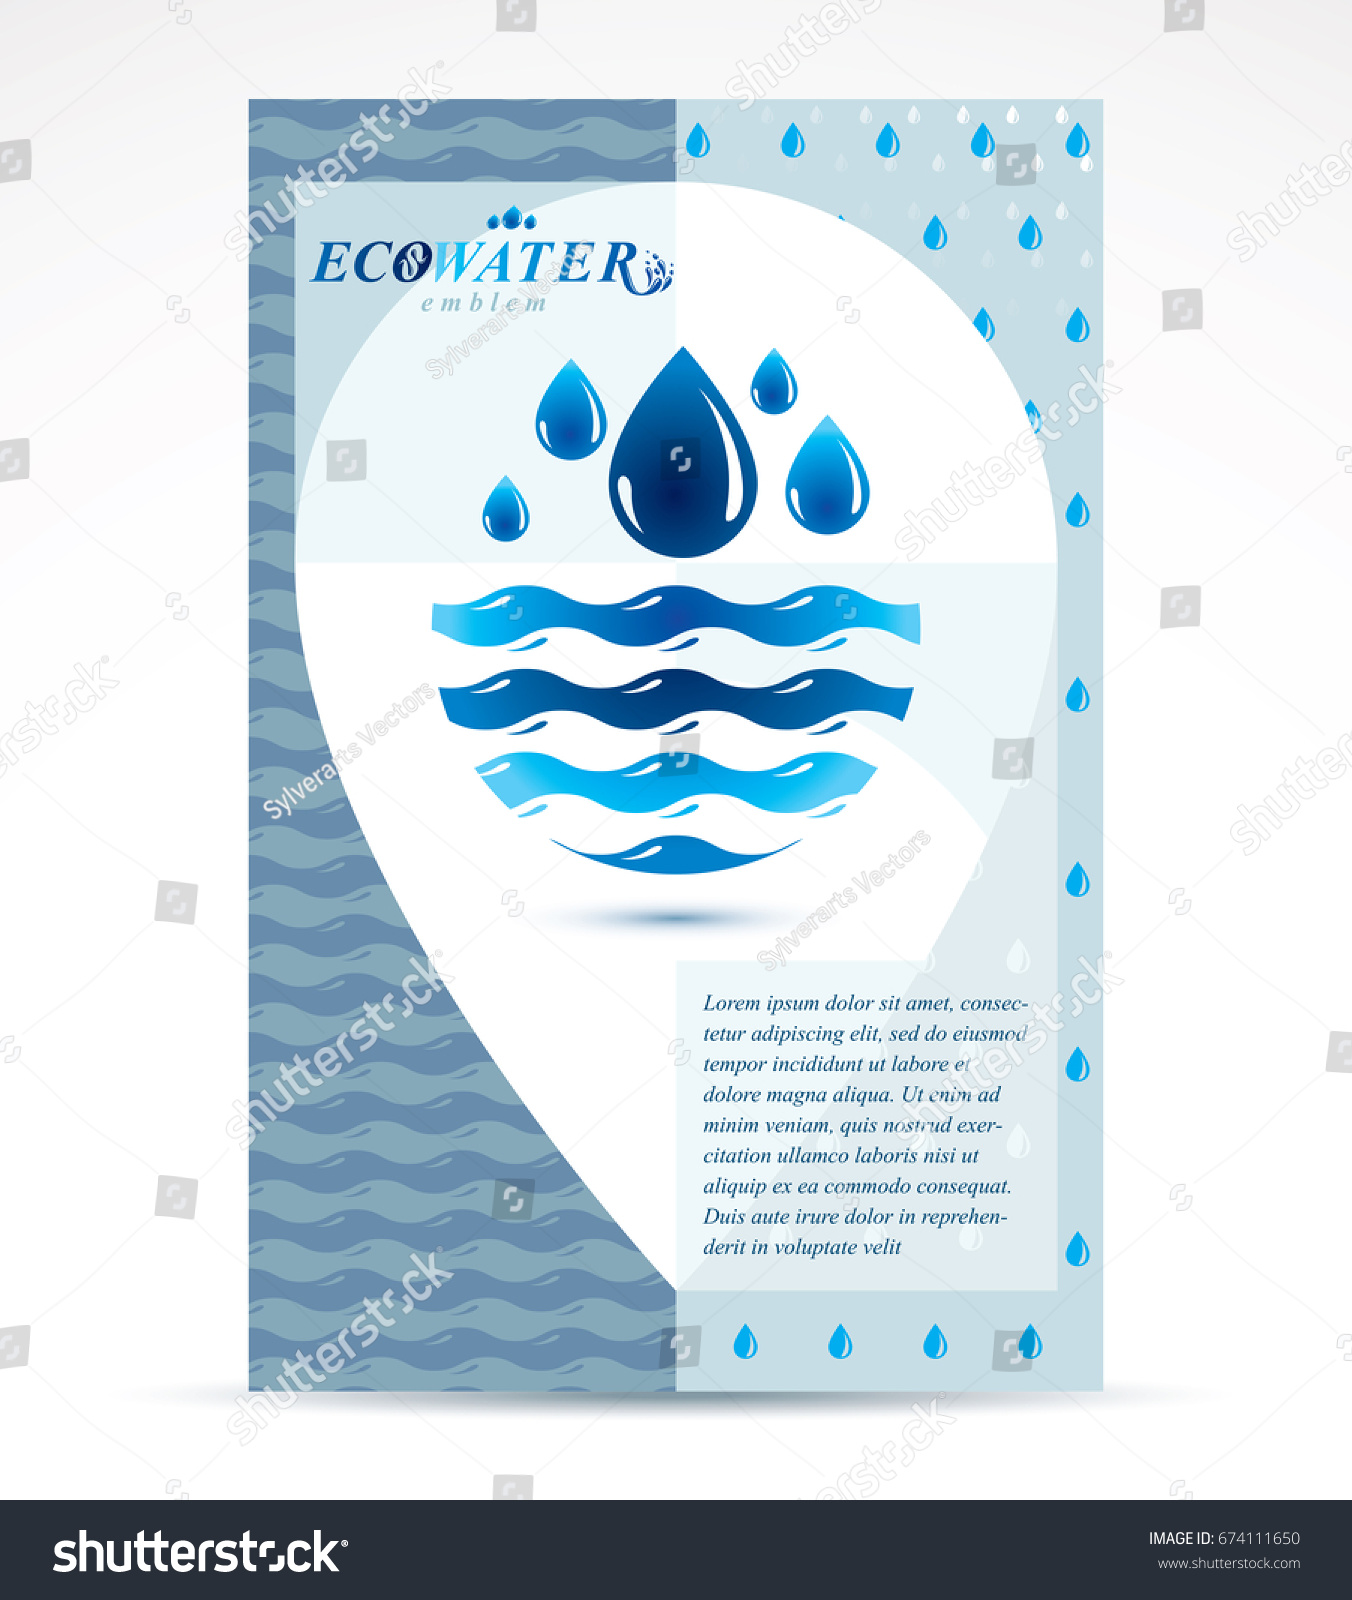 Water Purification Business Promotion Idea Brochure Stock Vector